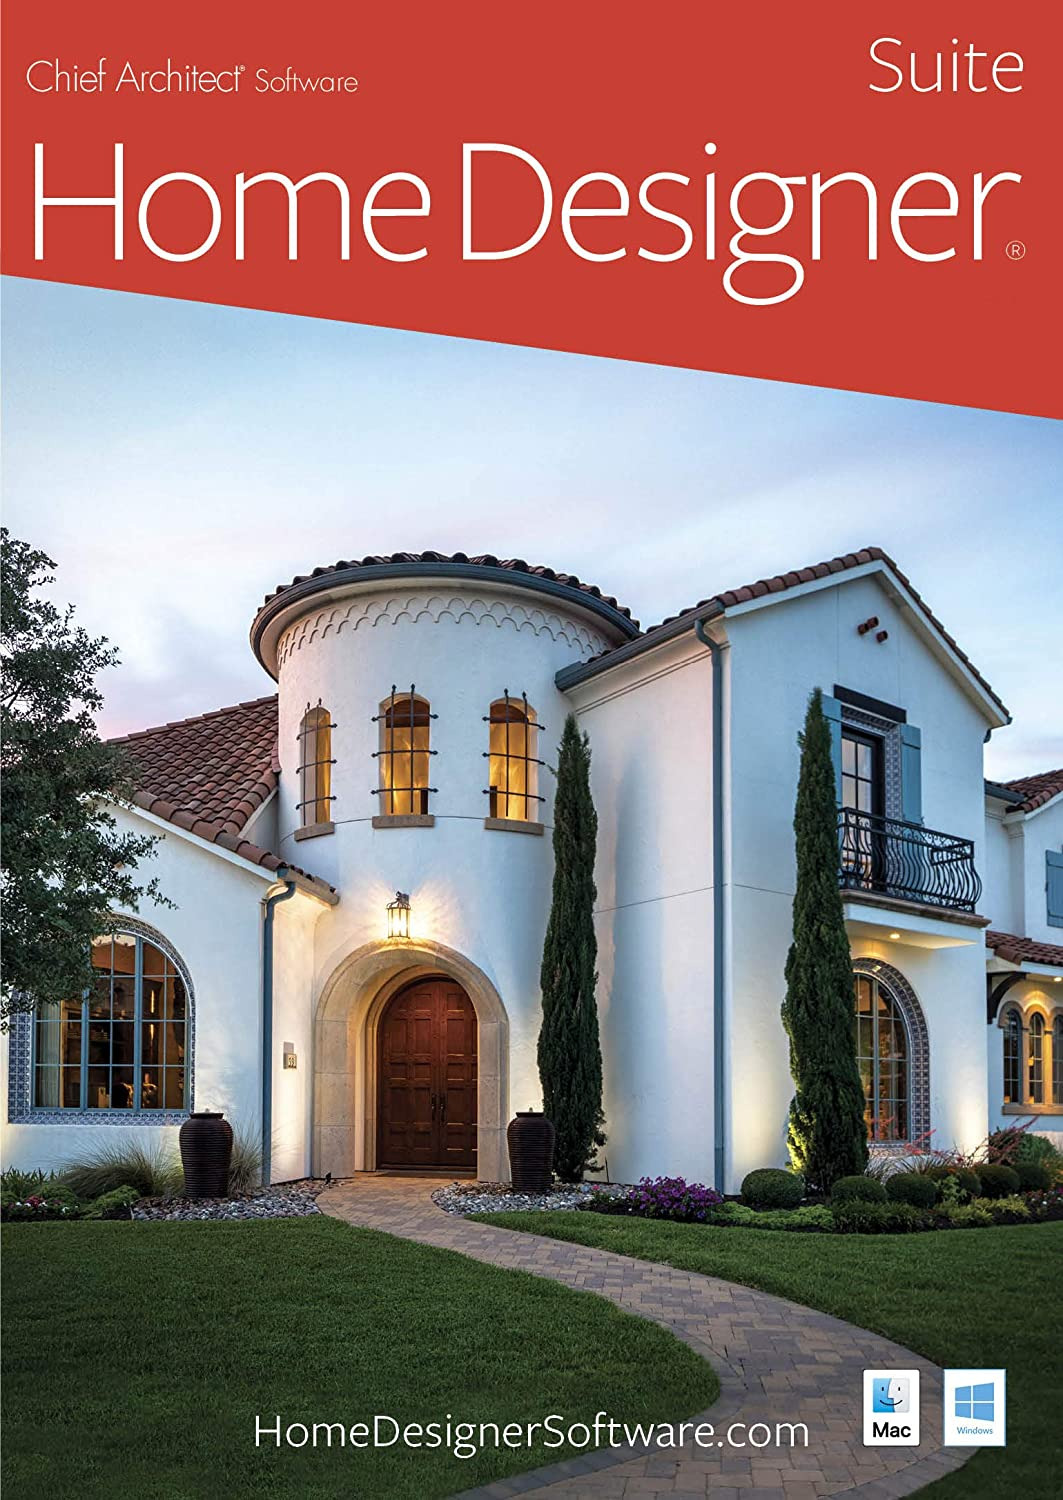 Architect Design for Home Images Luxury Chief Architect Home Designer Suite